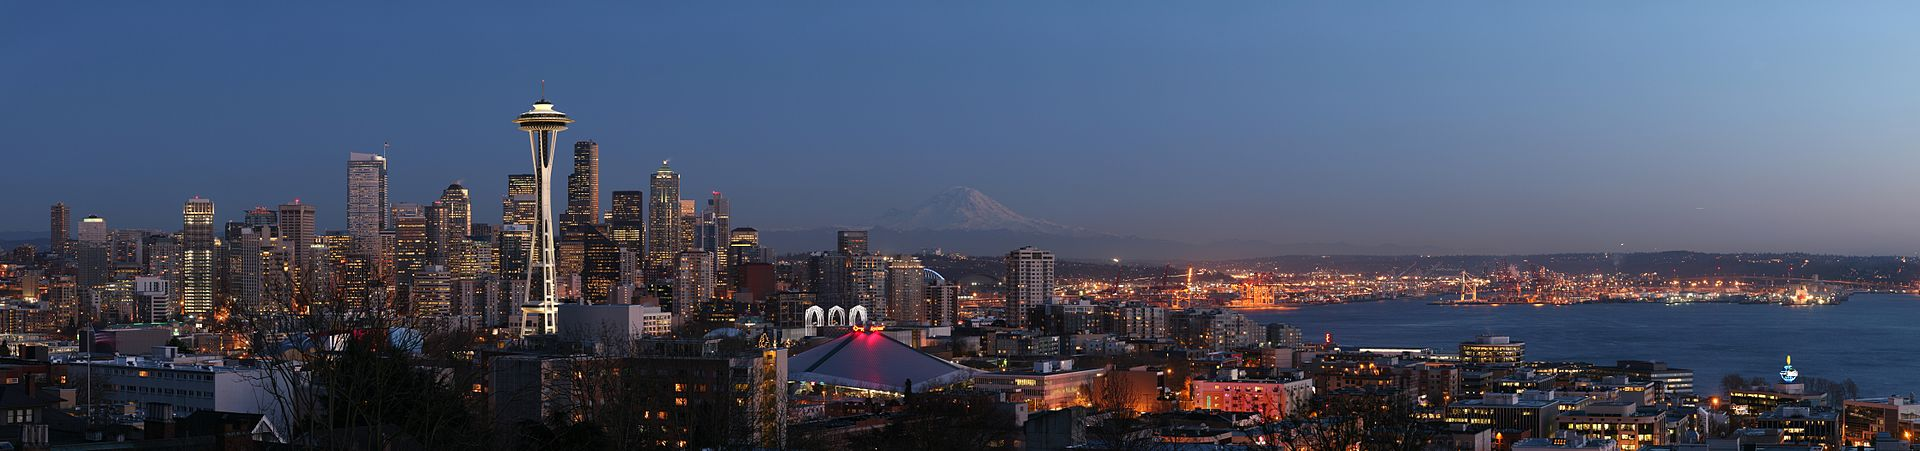 The Seattle skyline with Mount Rainier looming in the background